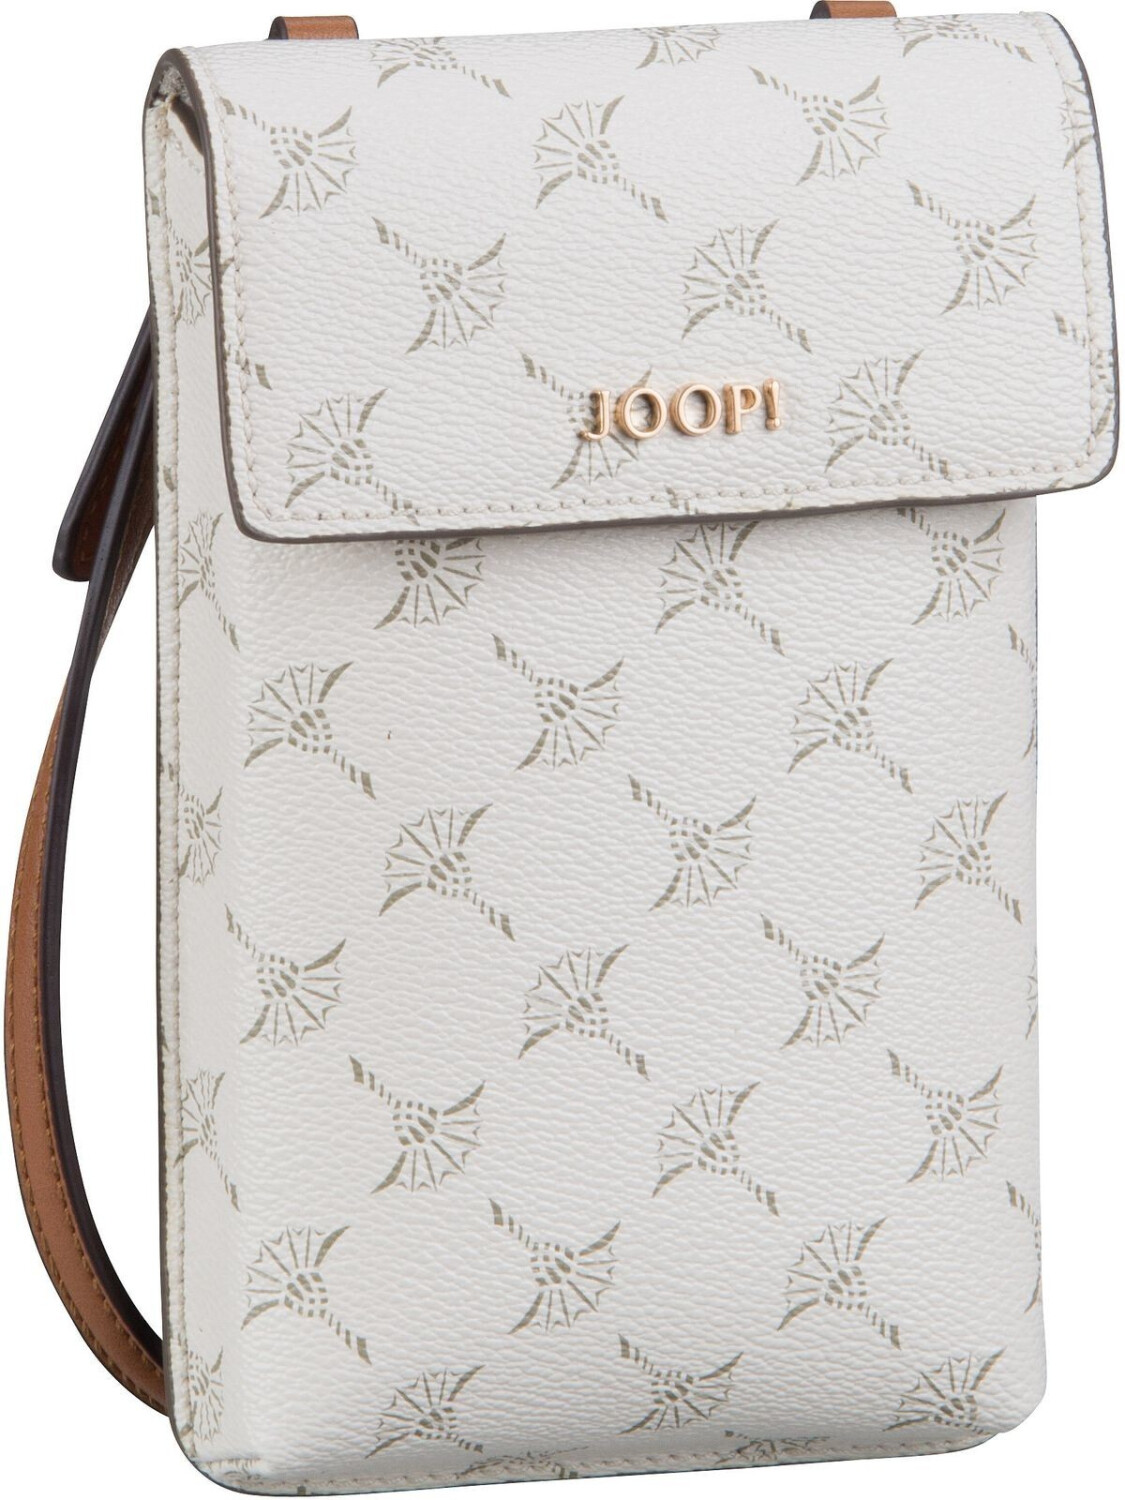 Image of Joop! Phonebag Cortina Pippa